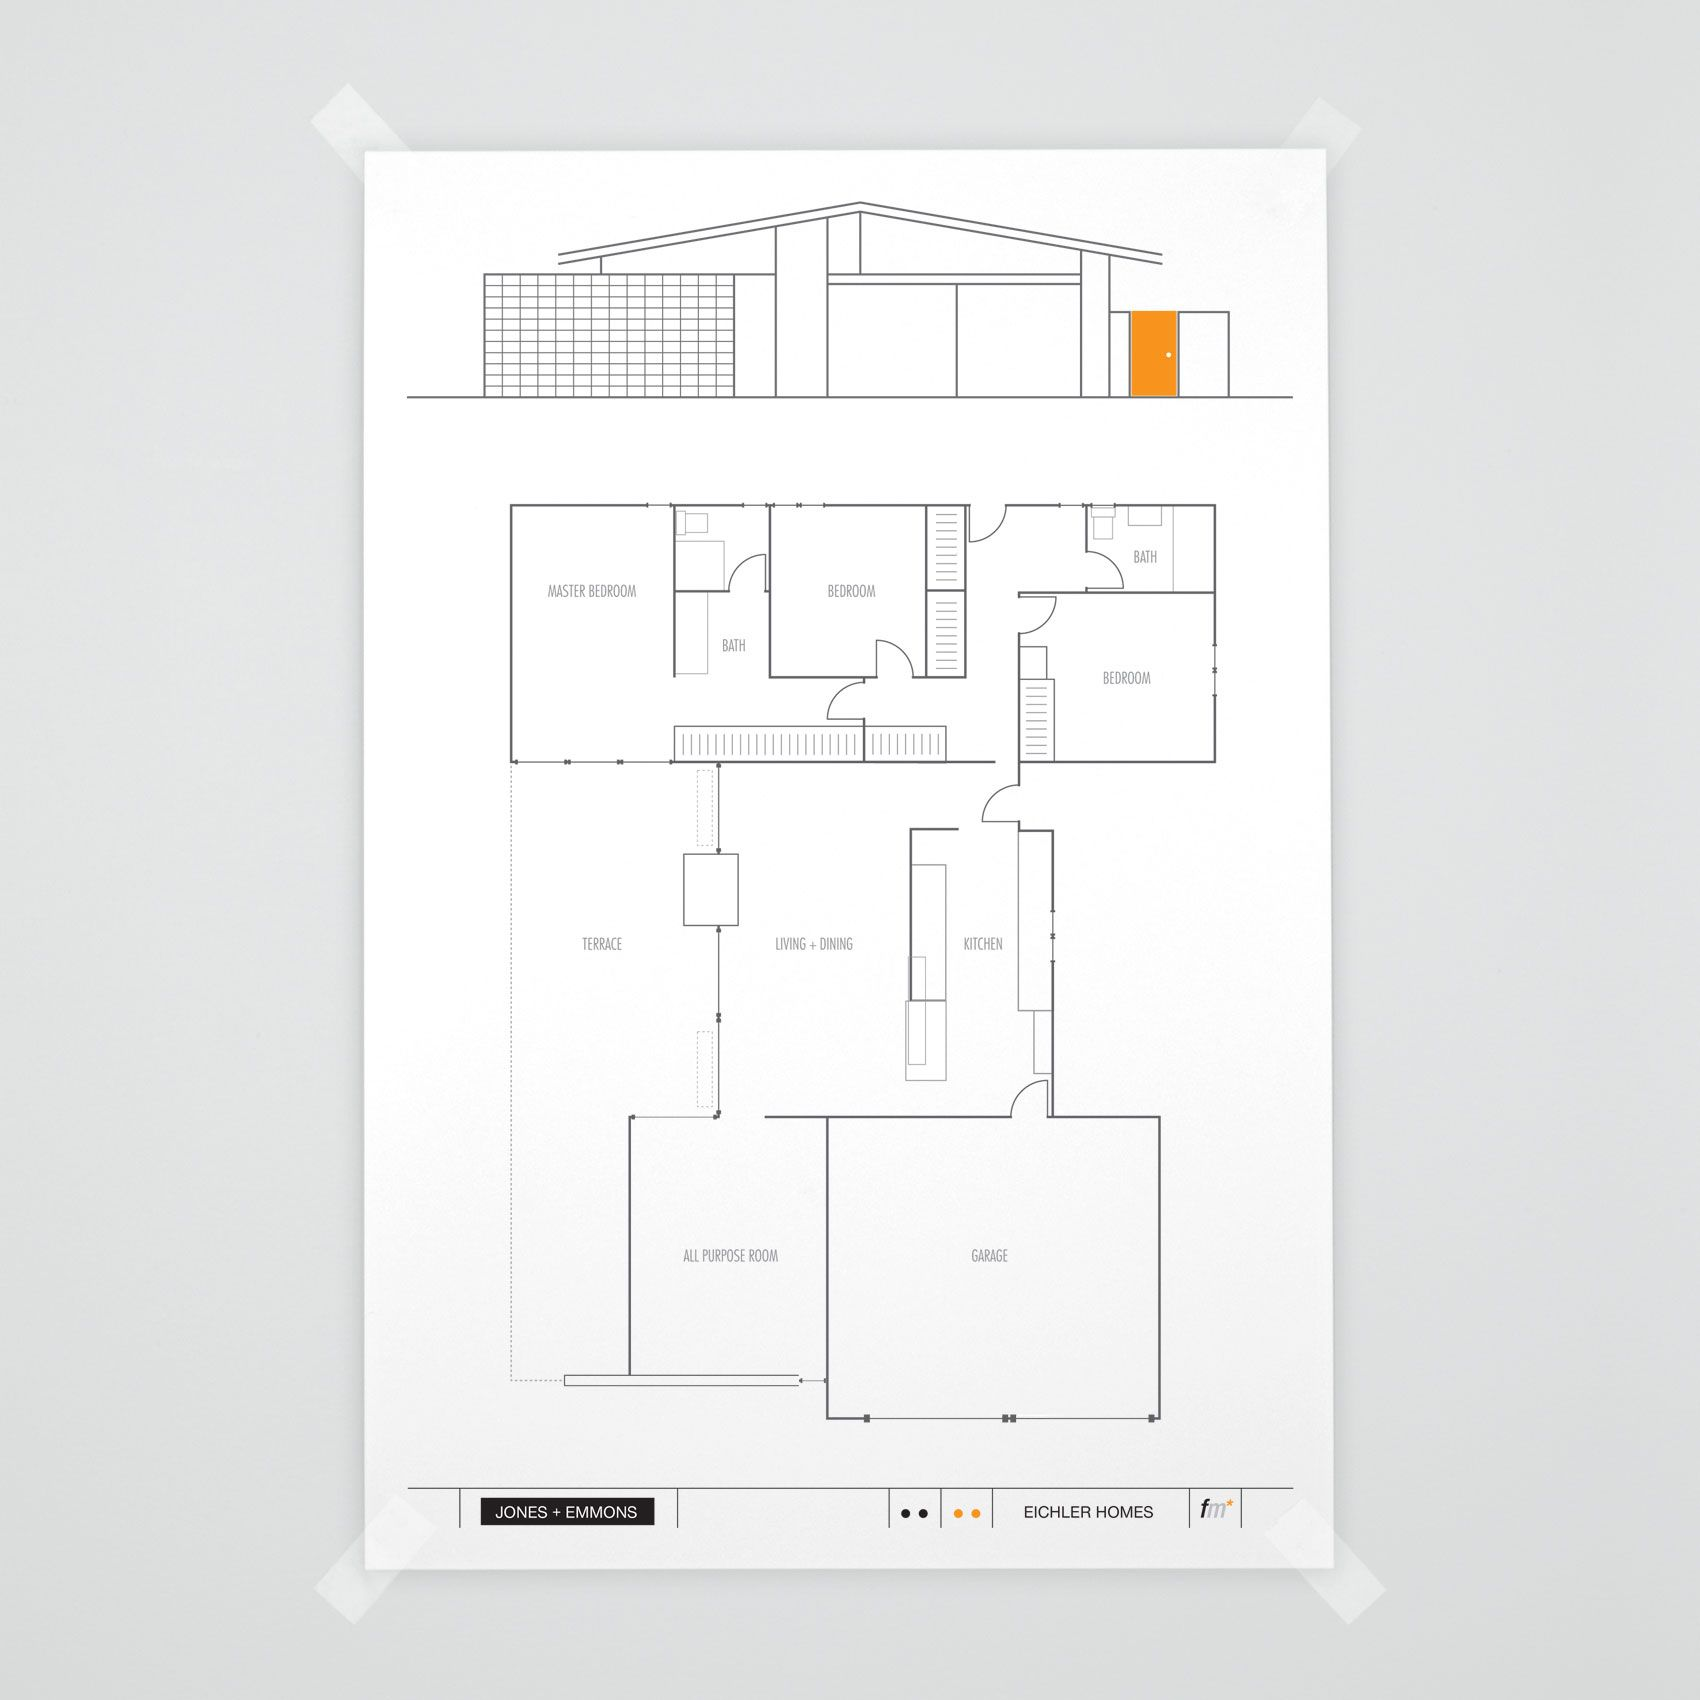 Independent And Simplified Life With Garage Plans With: JE-85 MODEL// EICHLER FLOORPLAN//JONES + EMMONS